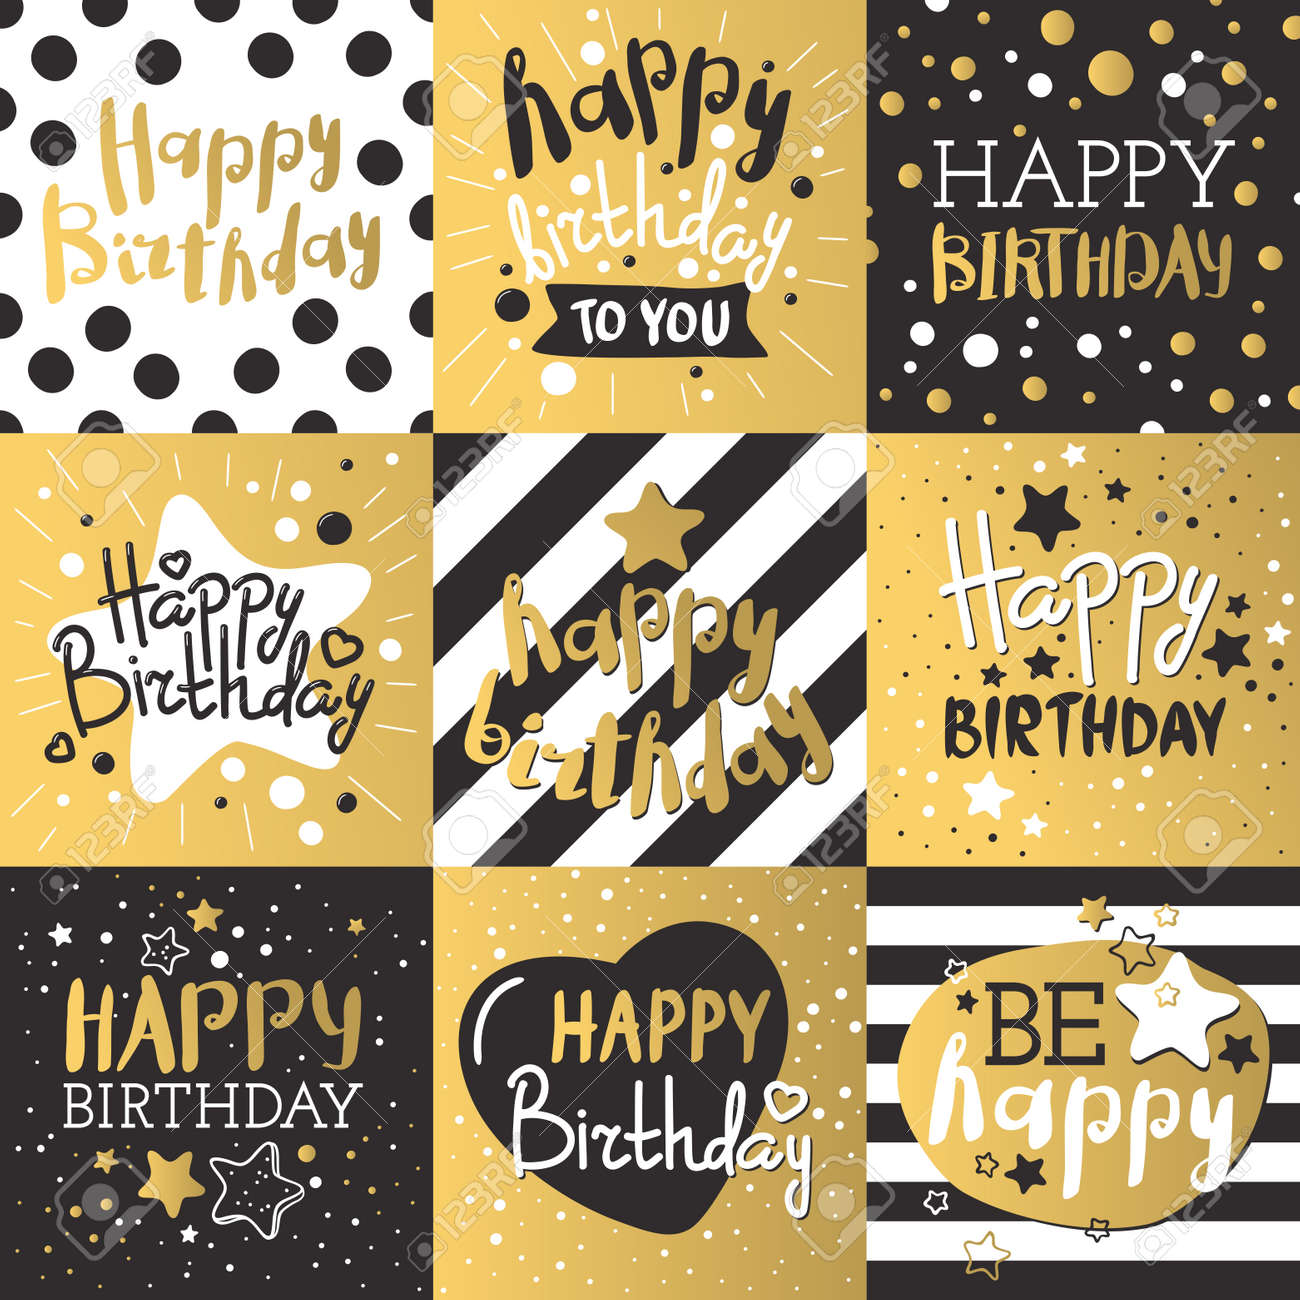 Beautiful Birthday Invitation Cards Design Gold And Black Colors